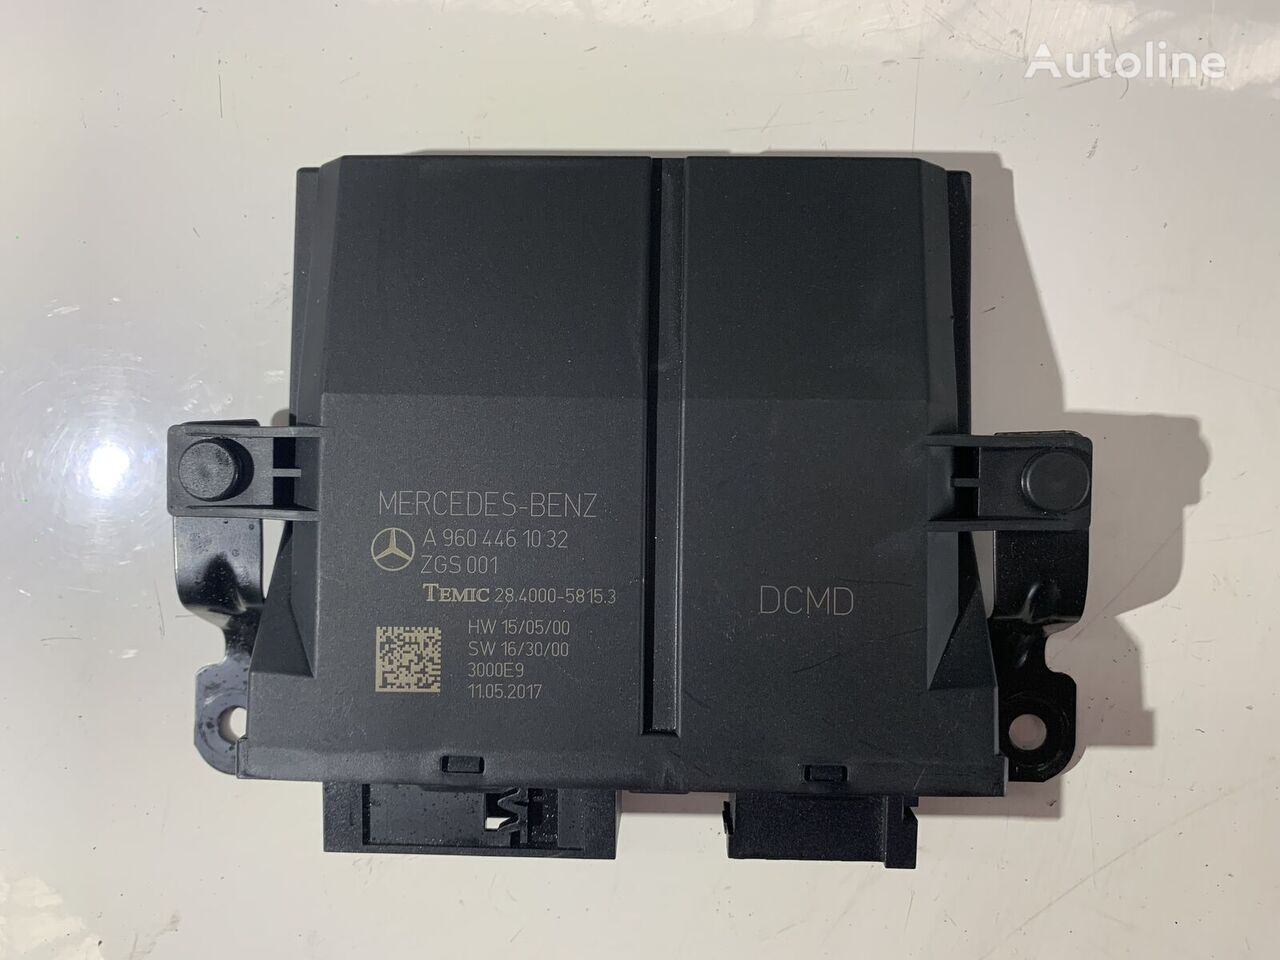 MERCEDES-BENZ control unit for MERCEDES-BENZ ACTROS  tractor unit